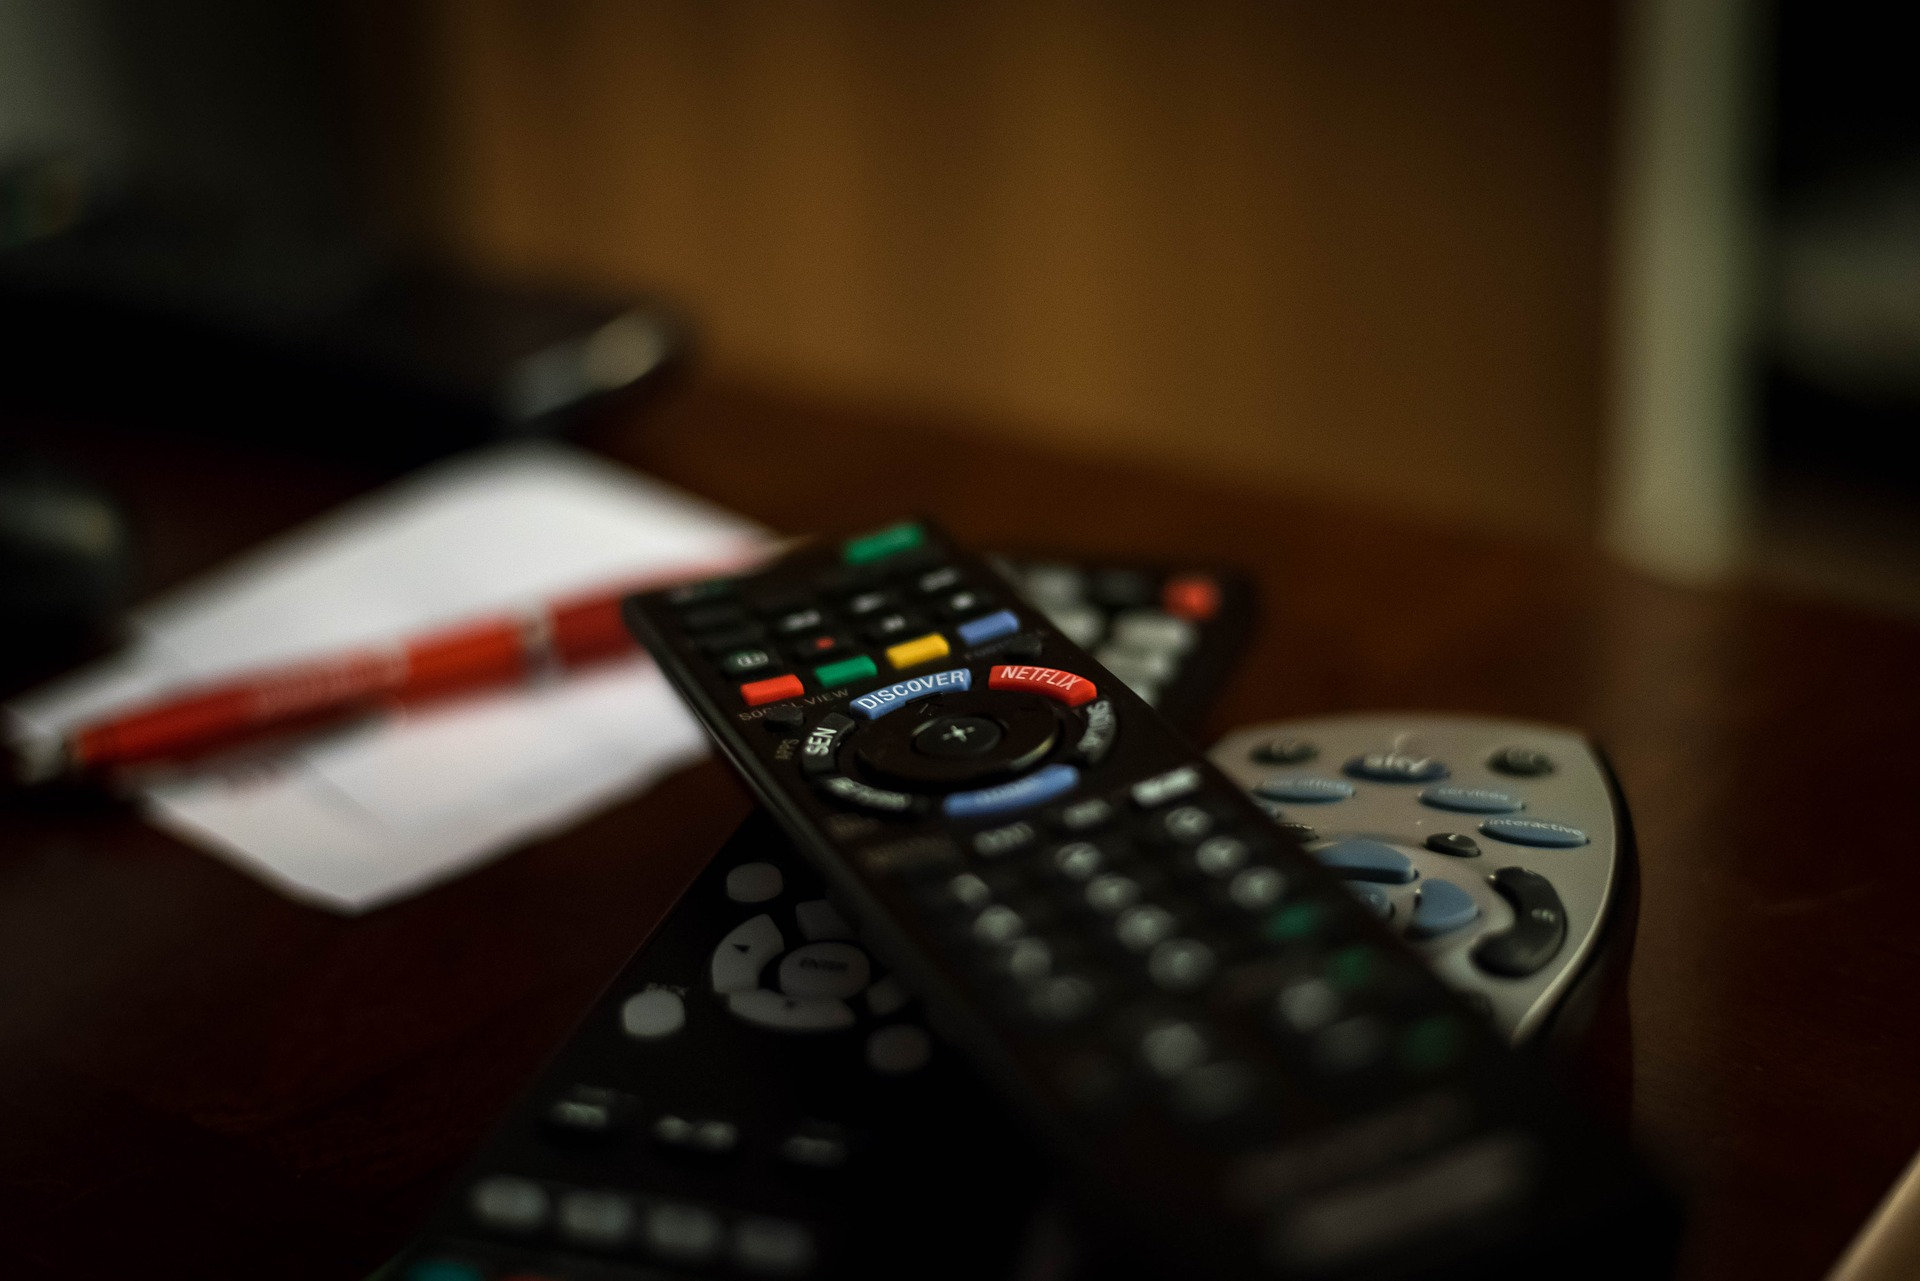 CME to complete sale of Nova TV in Croatia to United Group's unit in July